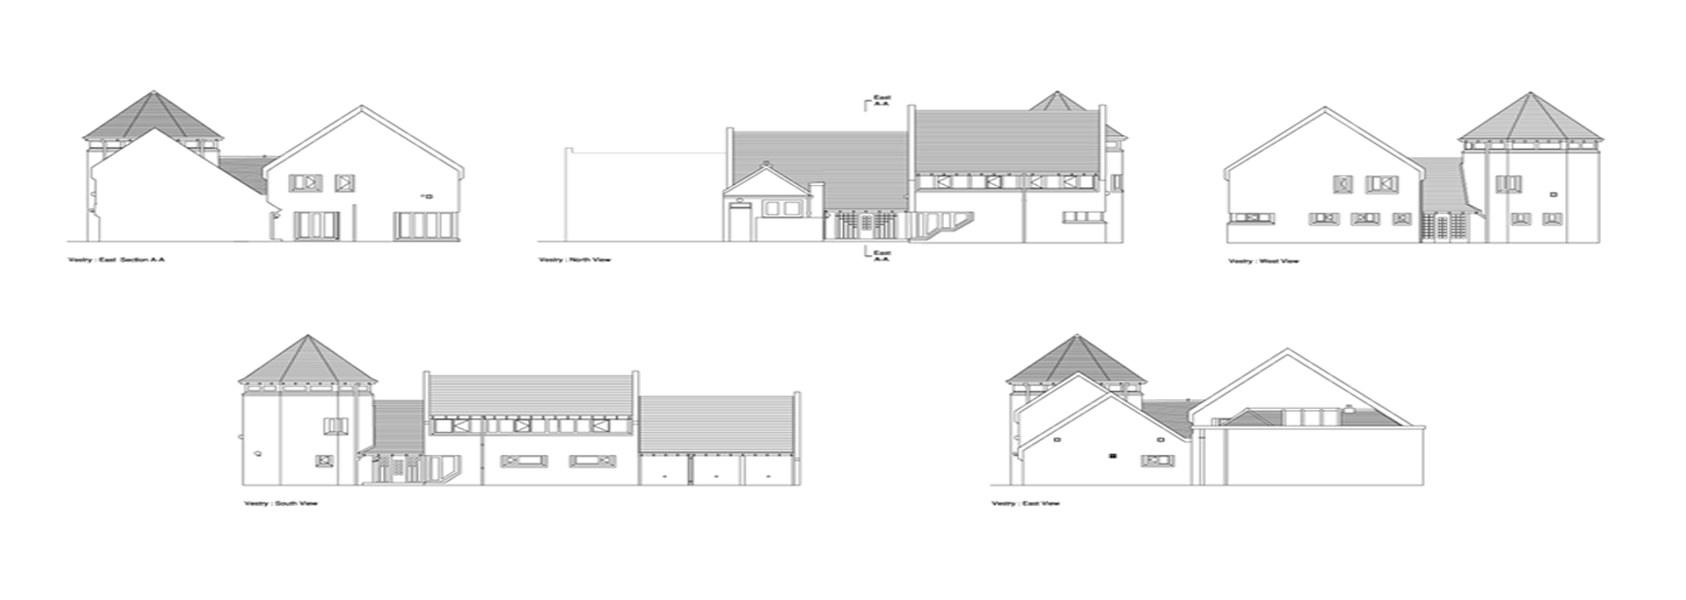 cad architectural plans and elevations